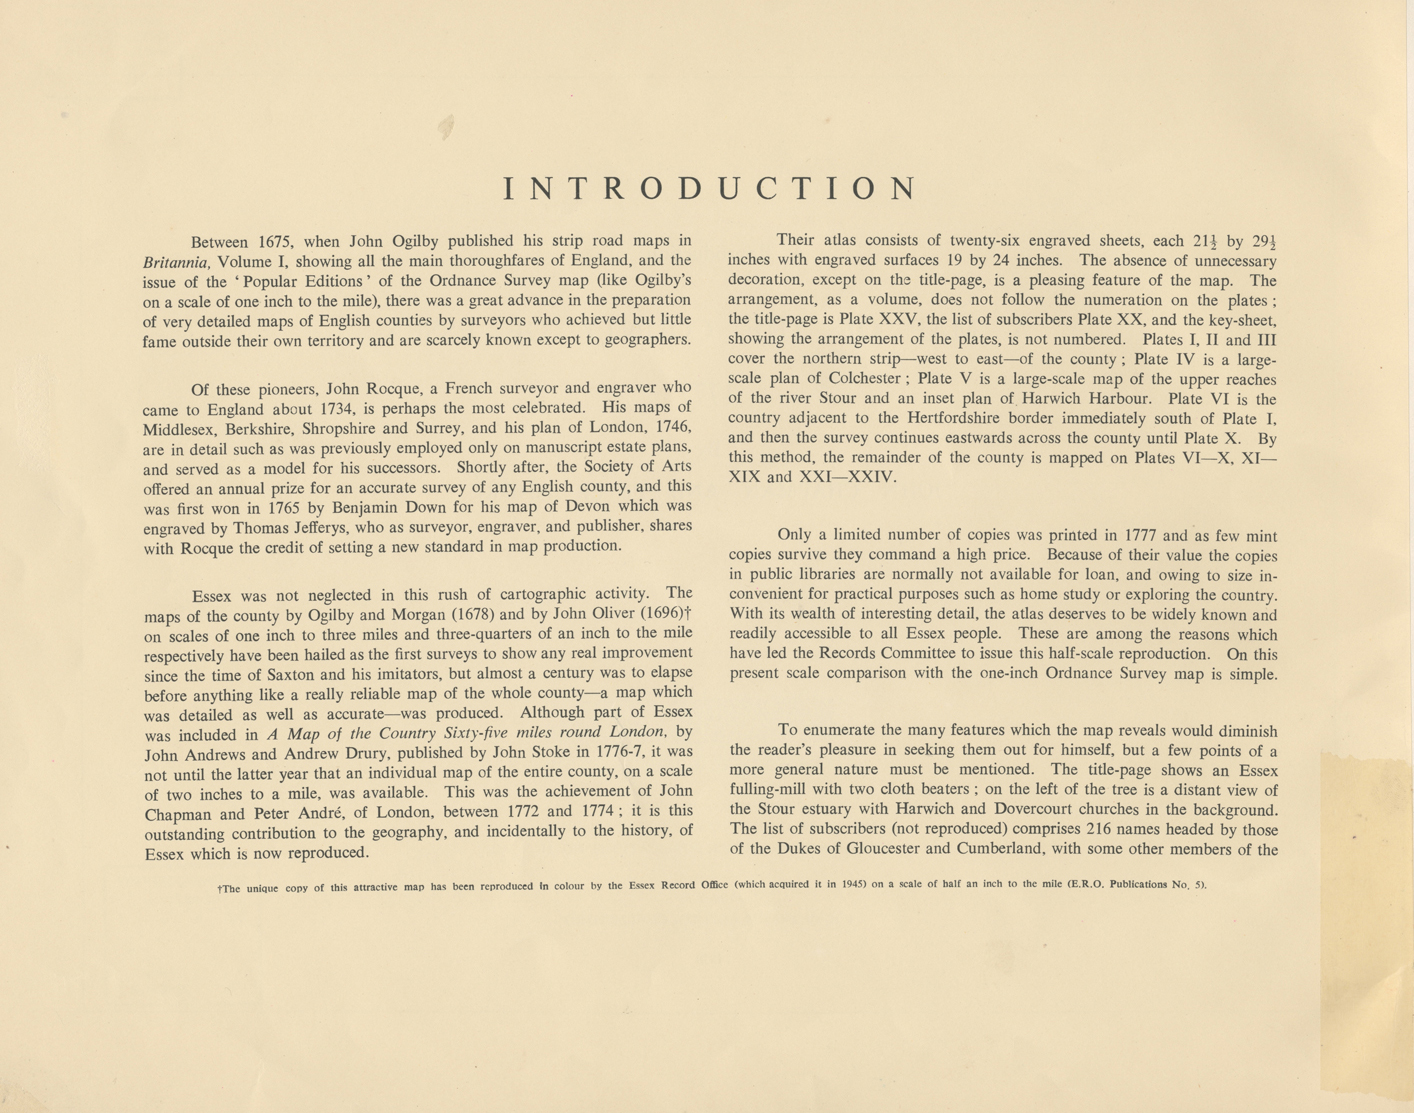 This image is a scan of the introductory text (p.4) from Essex Record Office publication A Reproduction of a Map of the County of Essex 1777 by John Chapman & Peter André, 1950. This introductory text is transcribed below.